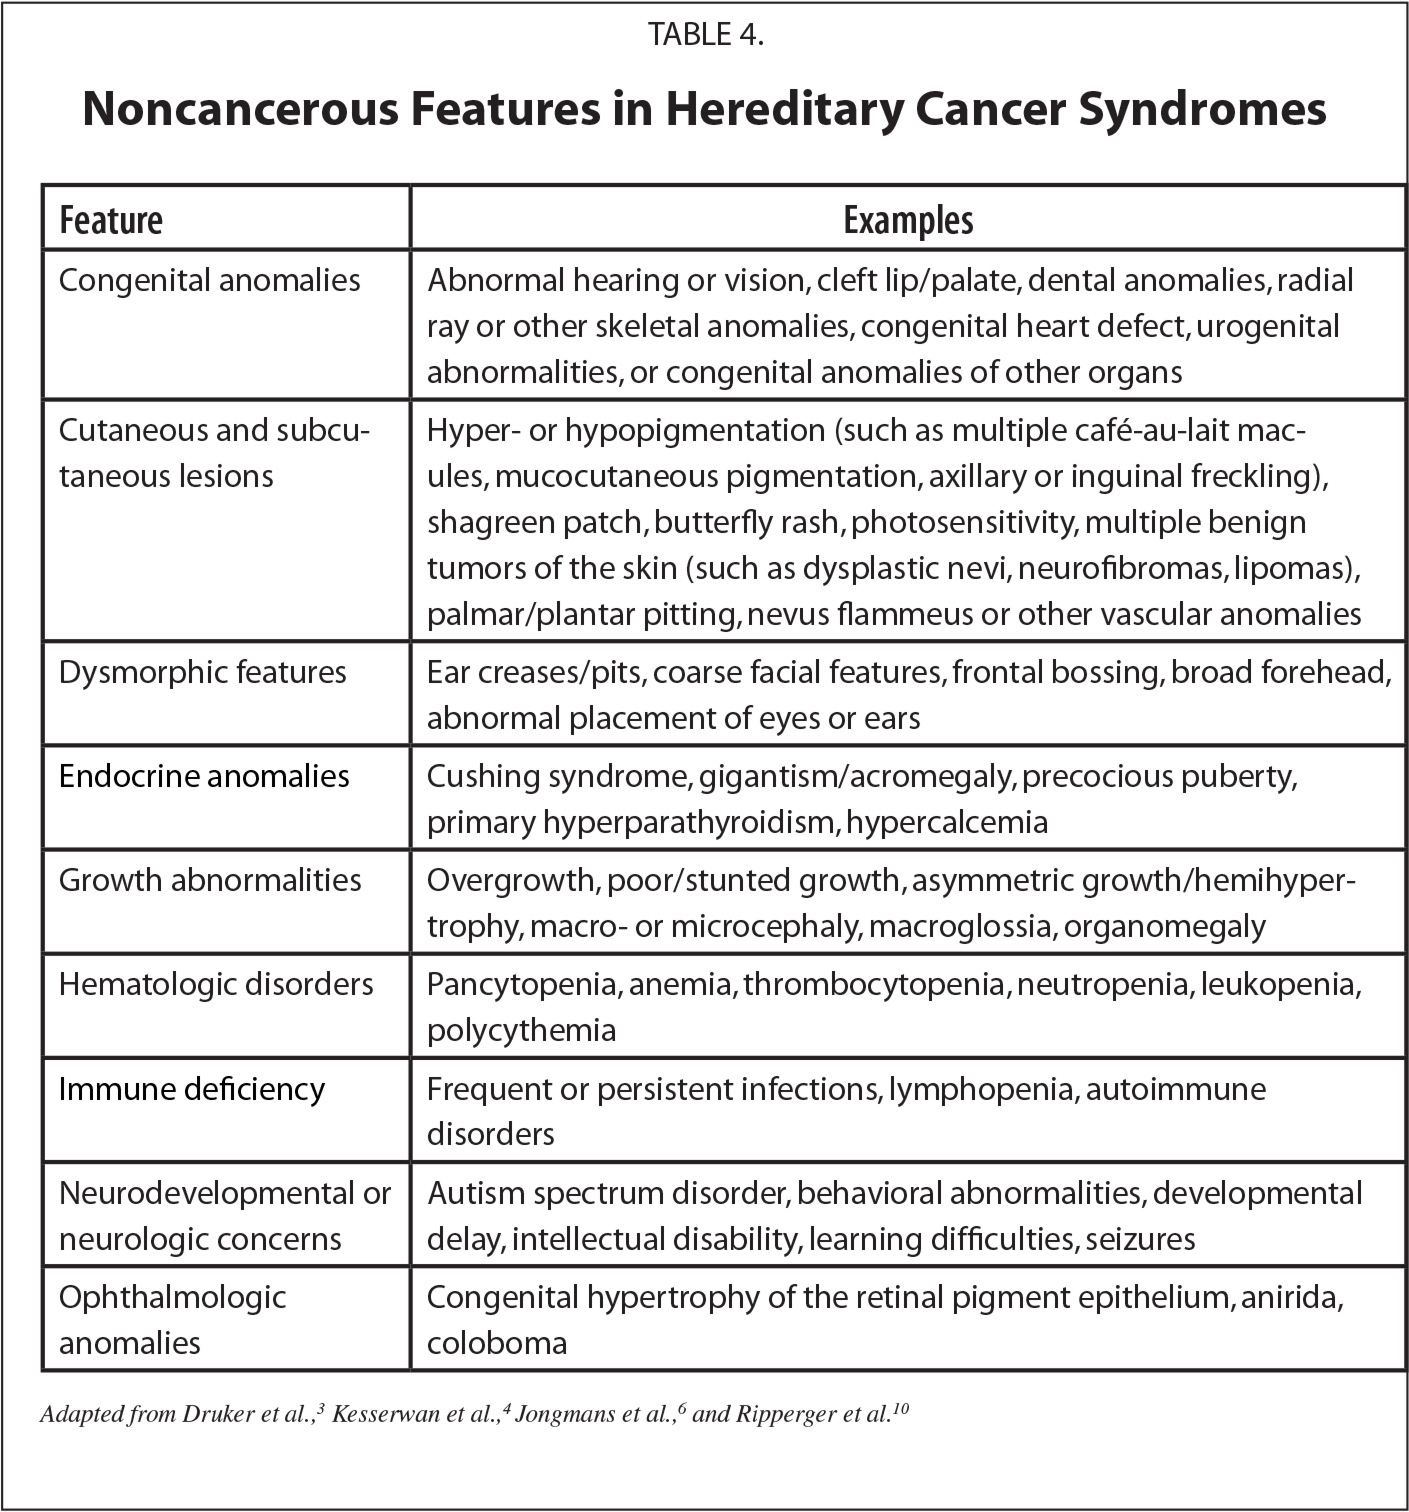 Noncancerous Features in Hereditary Cancer Syndromes